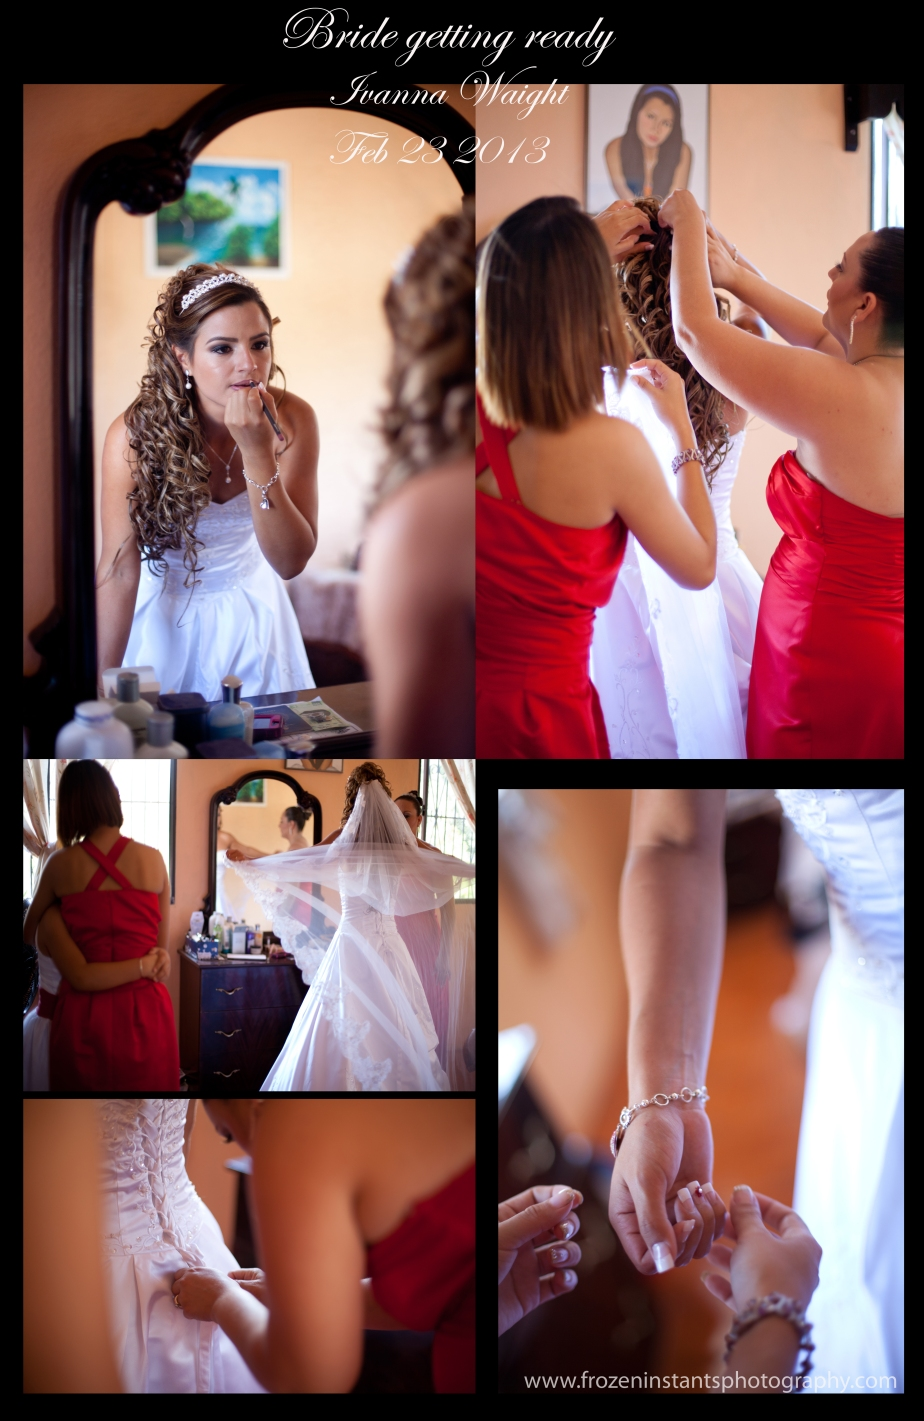 Bride getting ready in her home